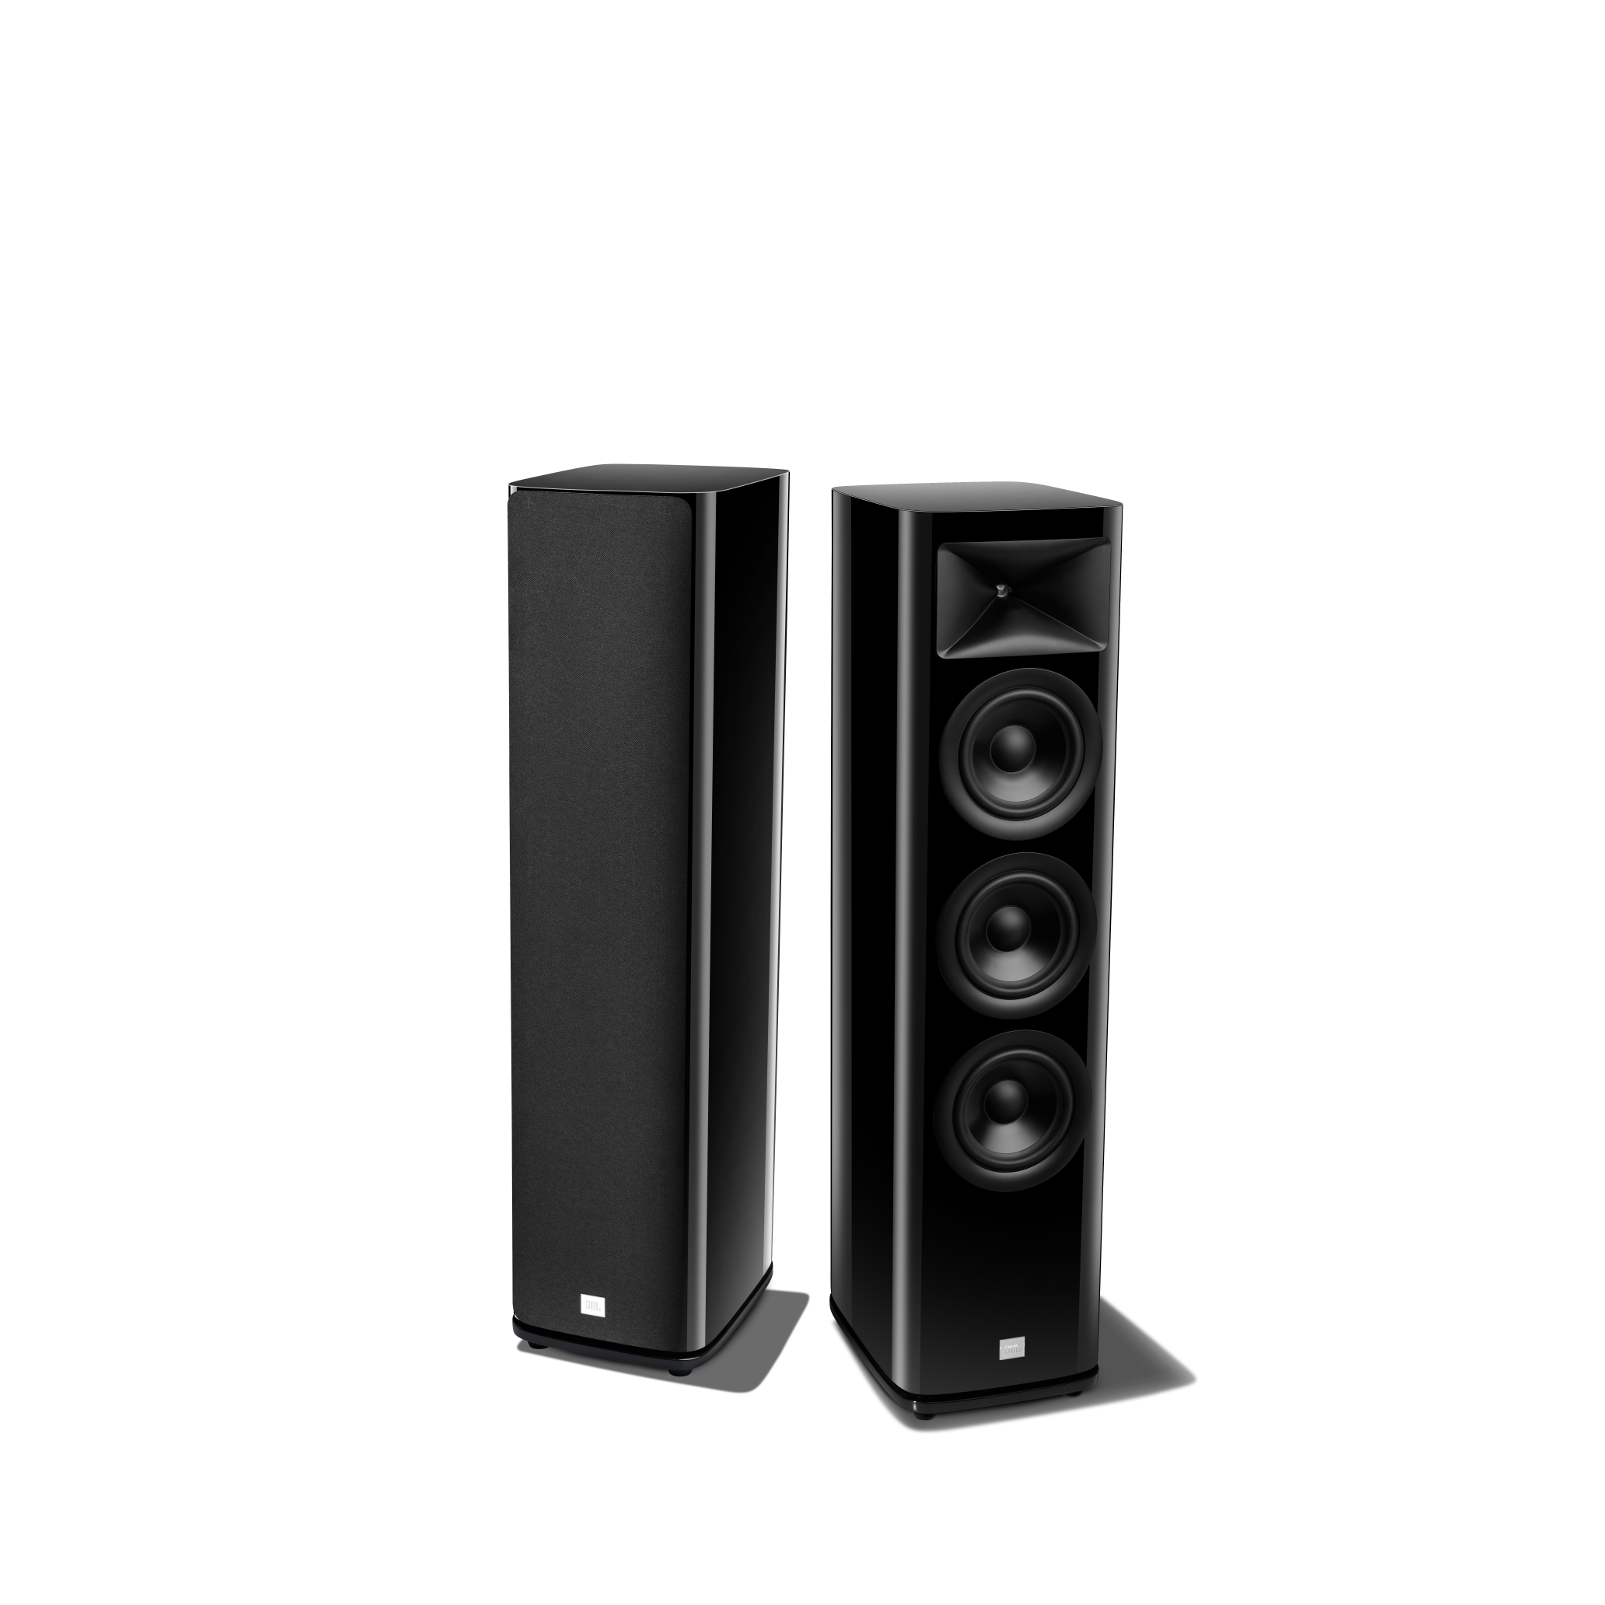 HDI-3600 - Black Gloss - 2 ½-way Triple 6.5-inch (165mm) Floorstanding Loudspeaker - Detailshot 1